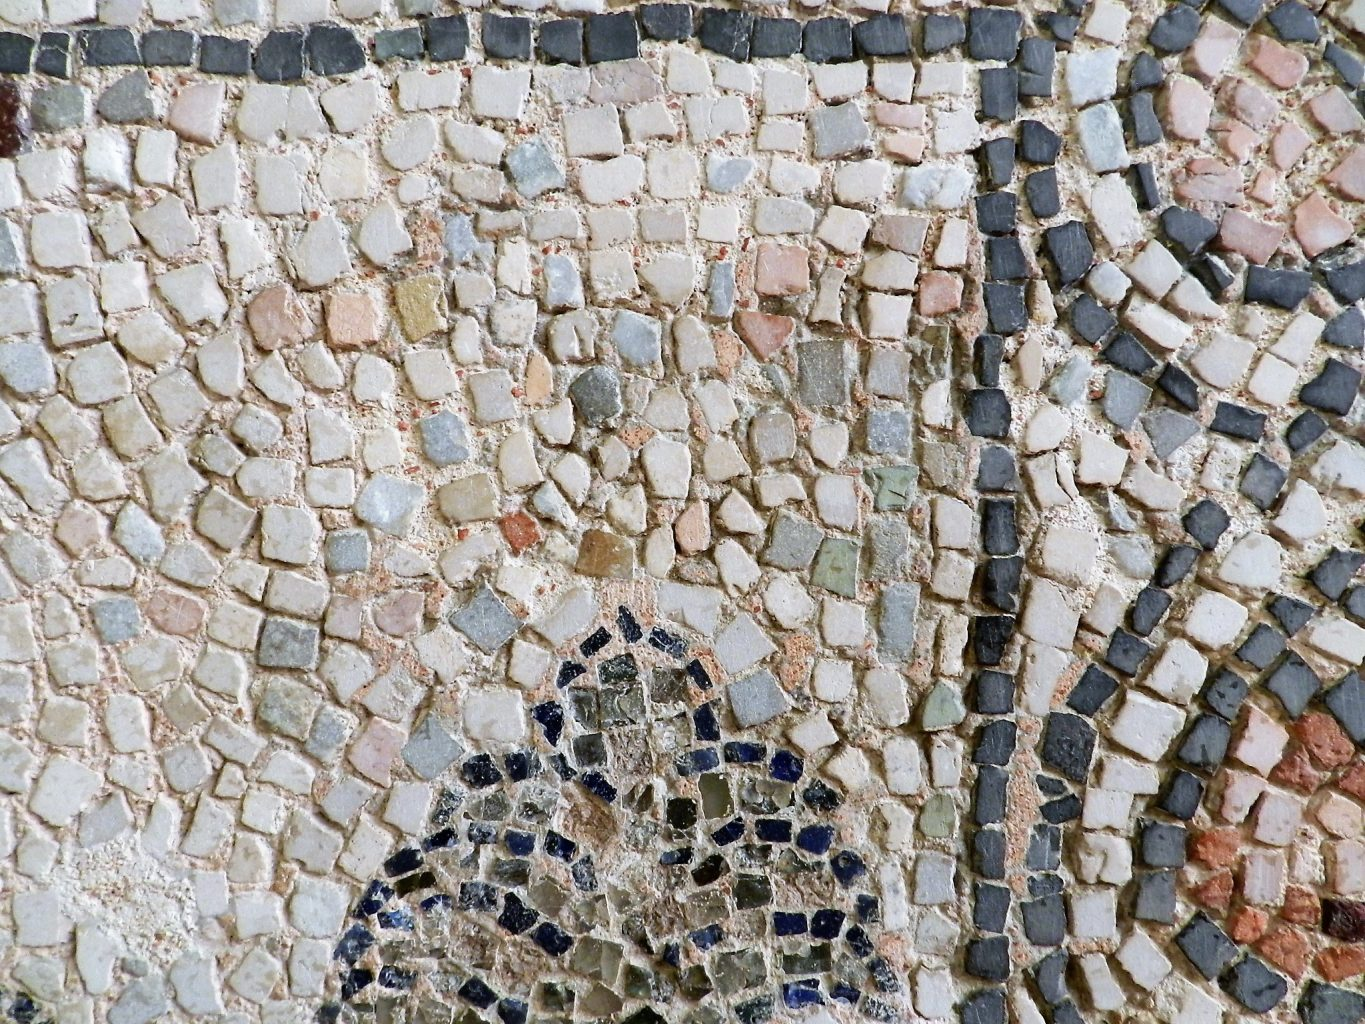 Mixing of coloured stones. Mosaics of San Giovanni Evangelista, Ravenna